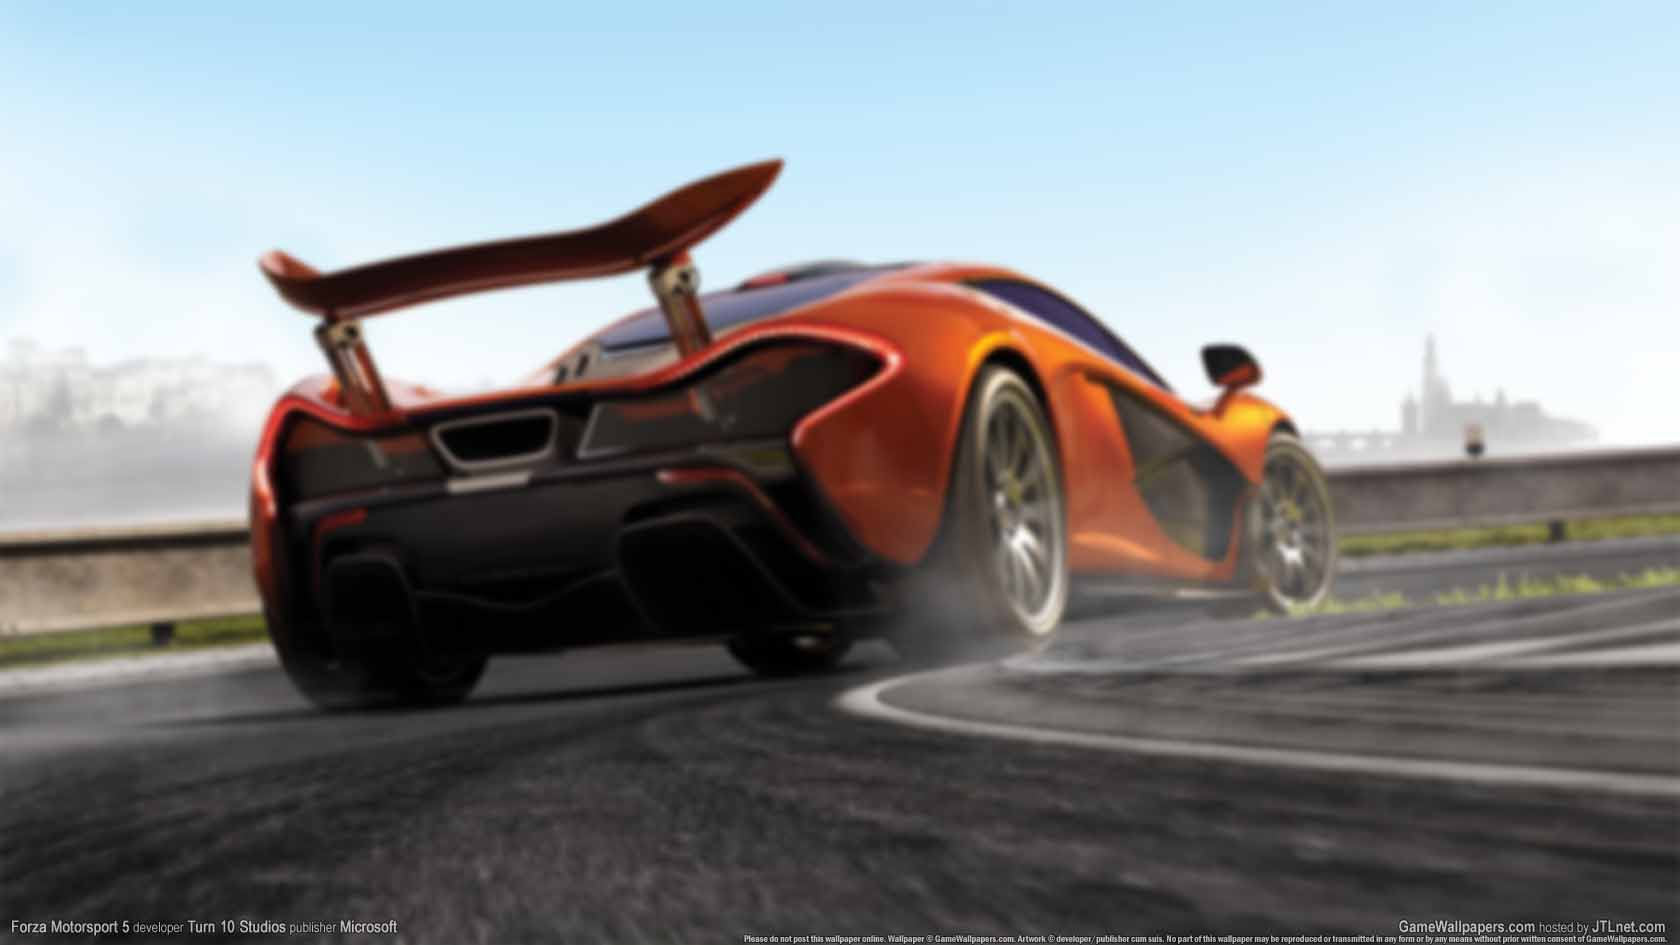 Forza Motorsport 5 1680x945 wallpaper or background 03 1680x945